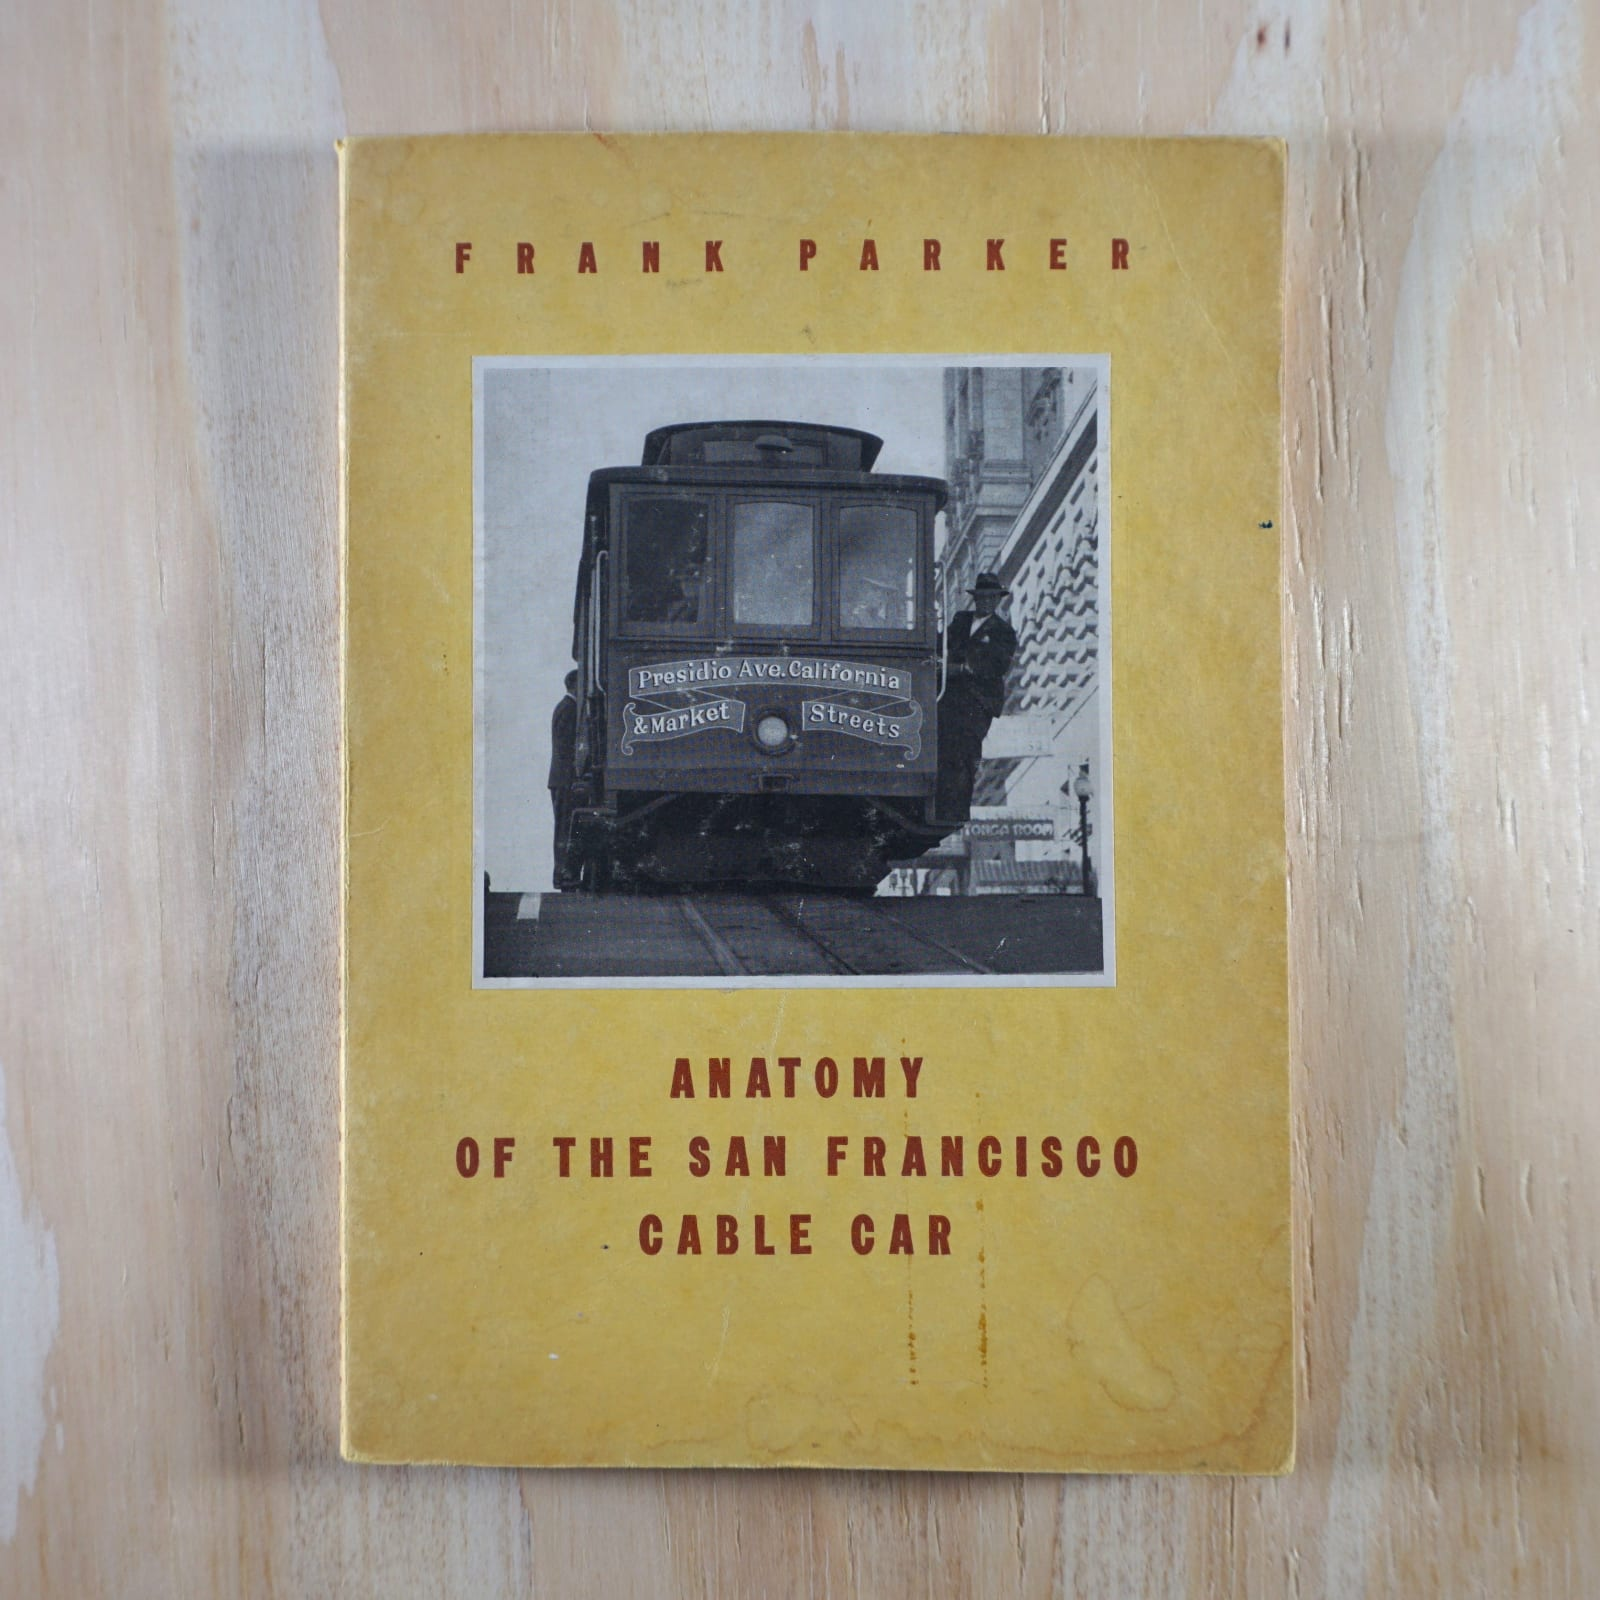 Fred Lyon's first published book discussed during the interview.